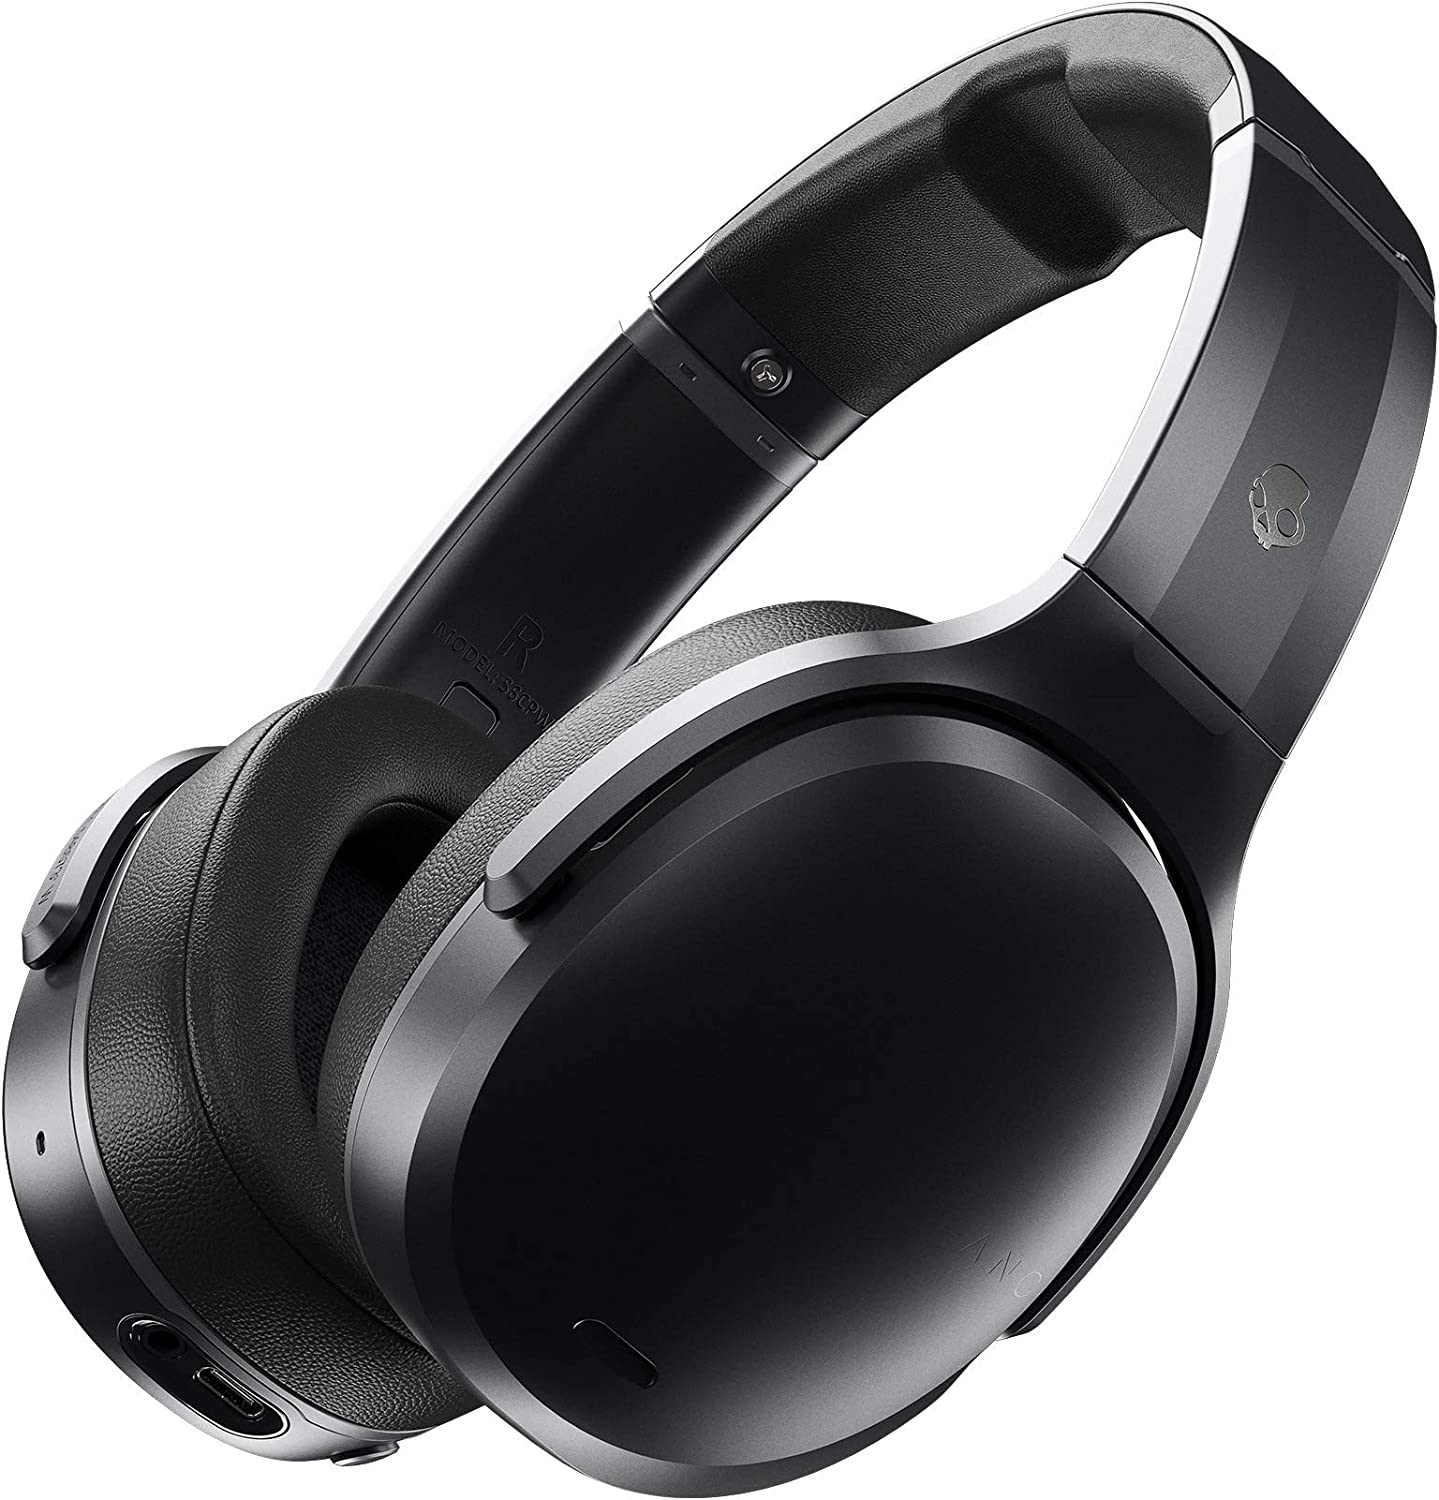 Skullcandy Crusher ANC Personalized Noise Canceling Wireless Headphone - Black